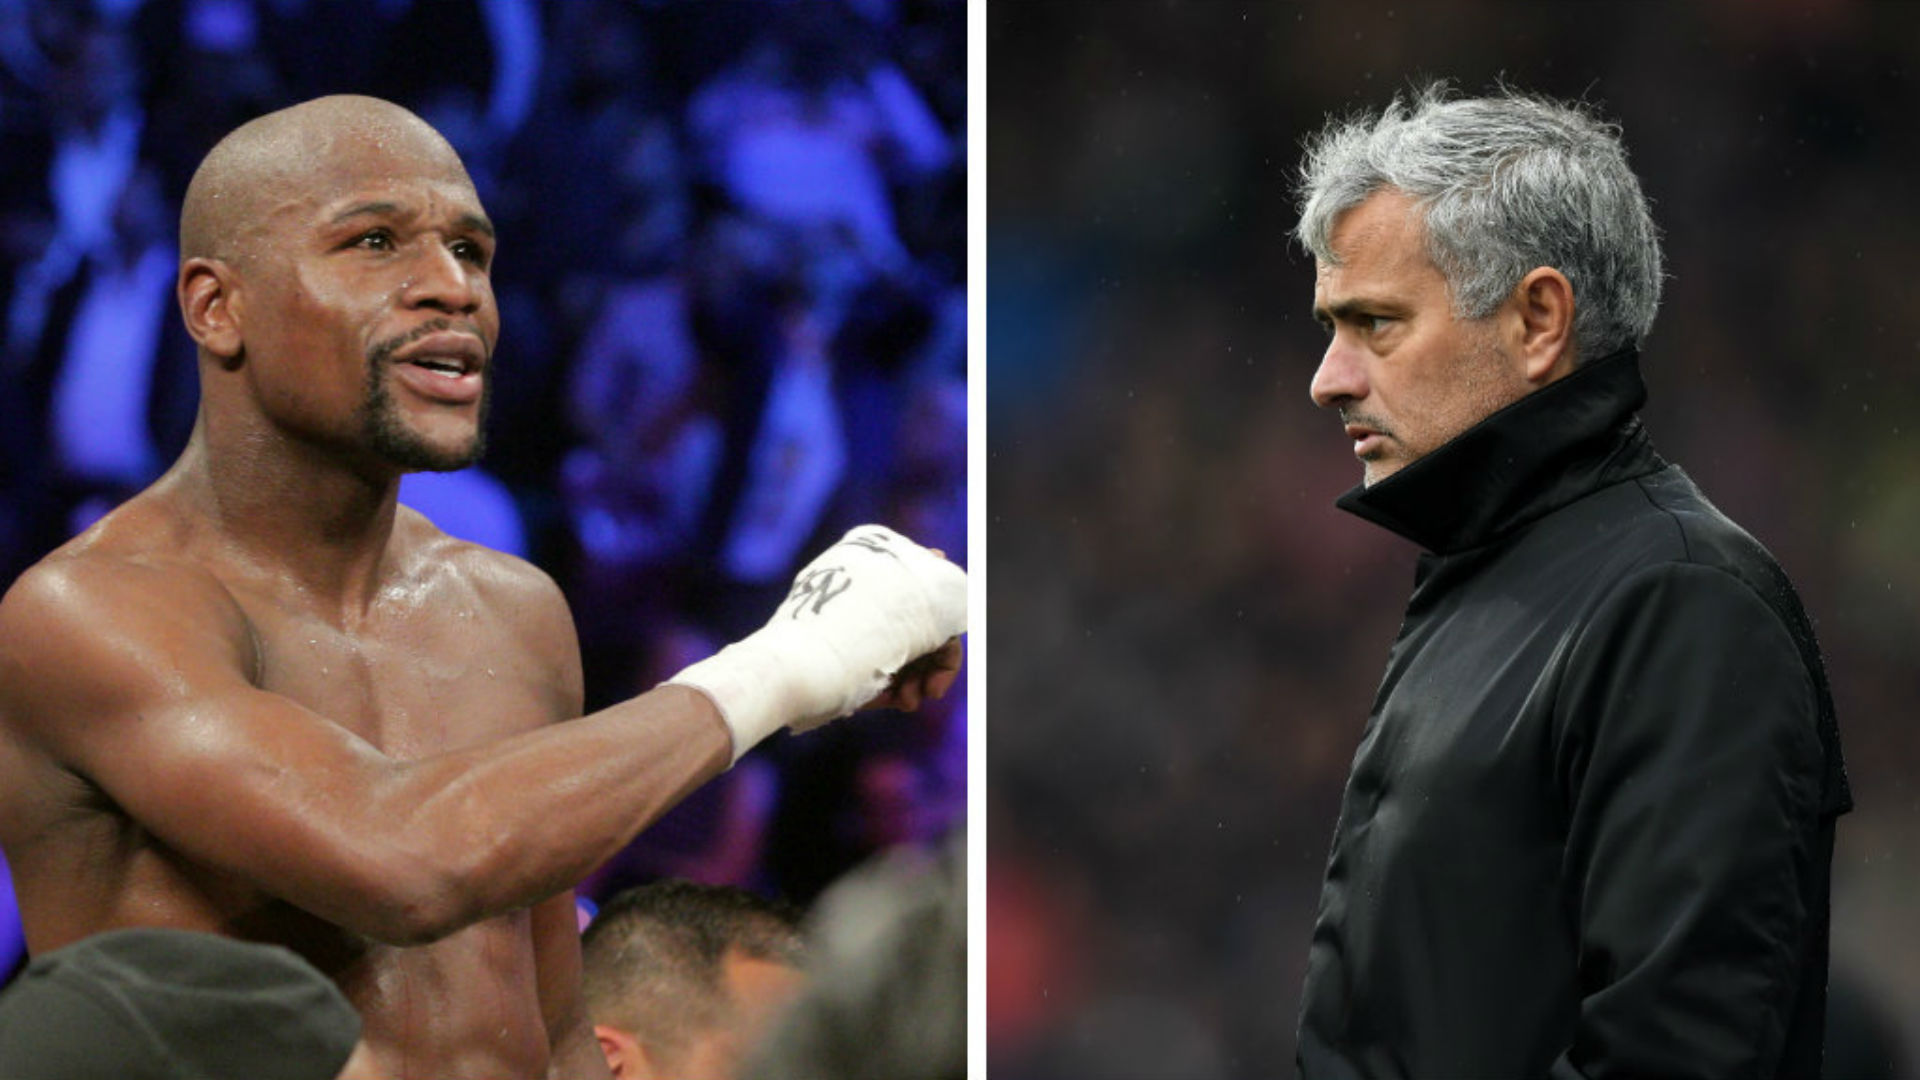 'Mourinho is like Mayweather' – Neville compares Man Utd boss to boxing legend